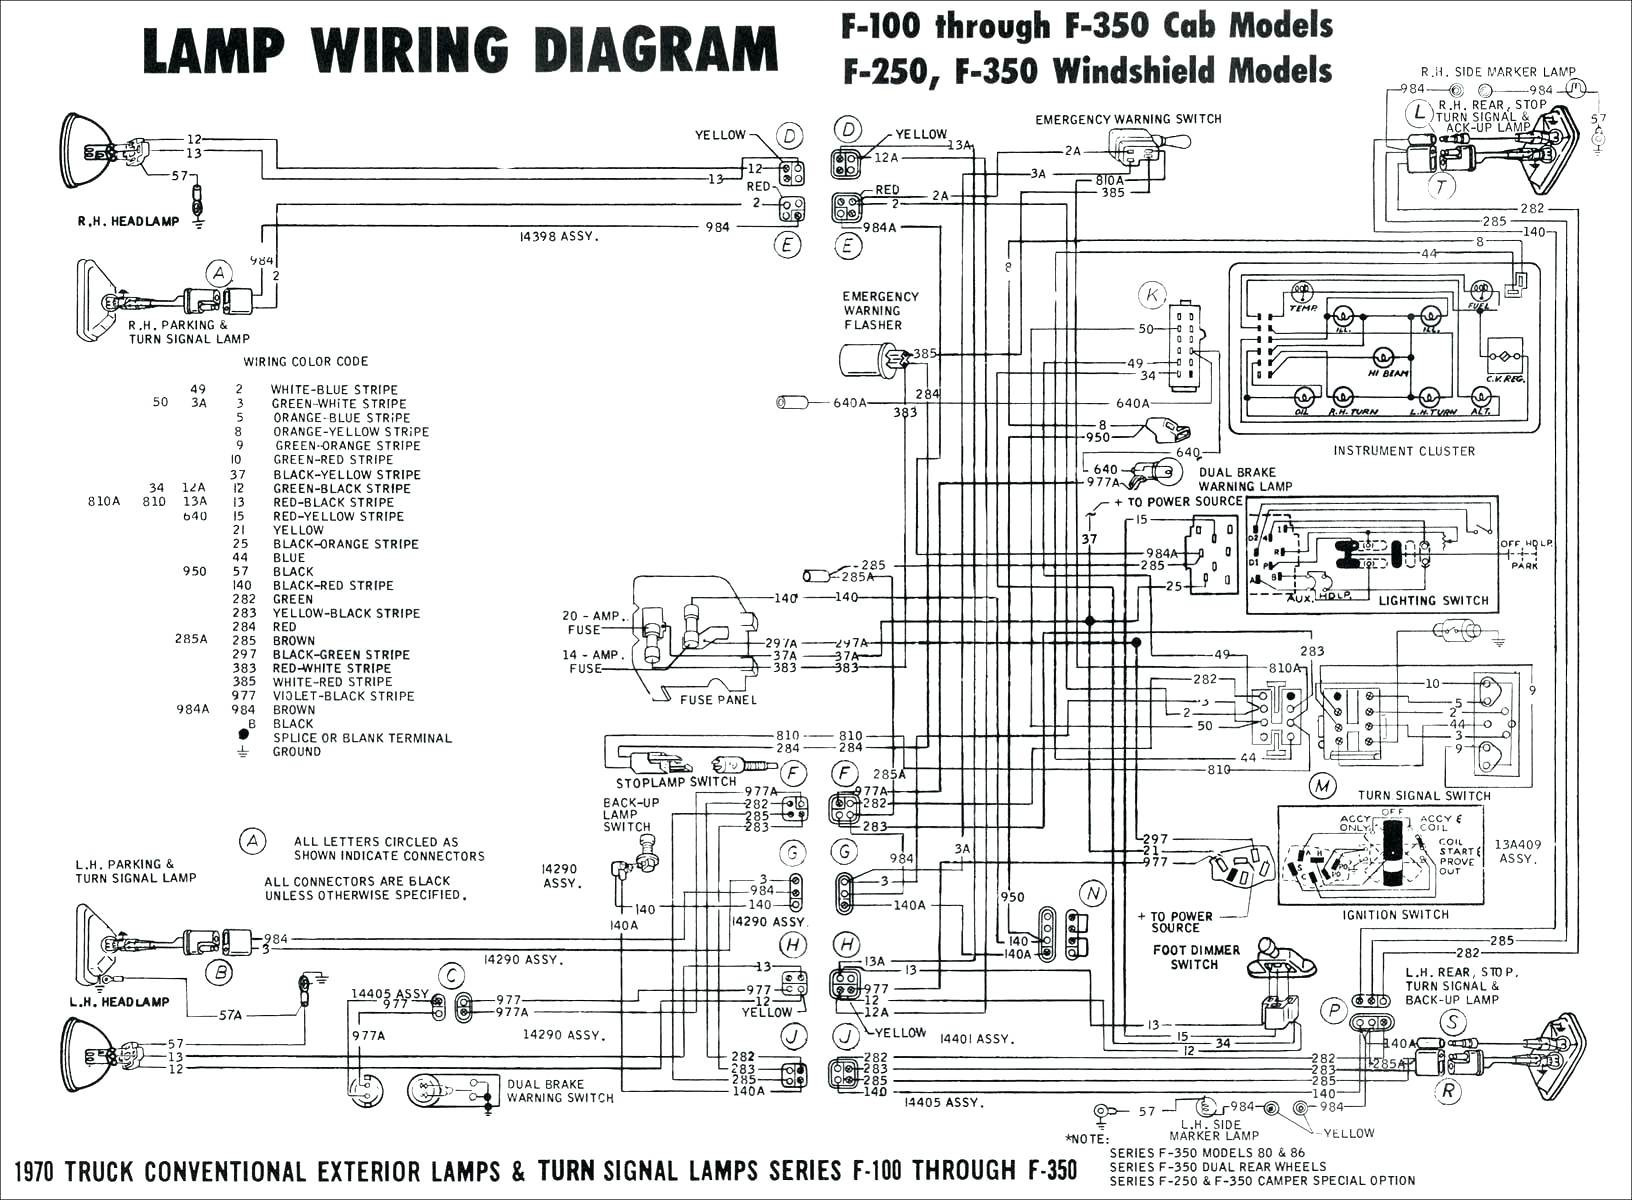 chevy express trailer wiring diagram Download-Audi A4 B8 Towbar Wiring Diagram Refrence Ranger Boat Trailer Wiring Diagram 5 … Wiring Center • 4-h